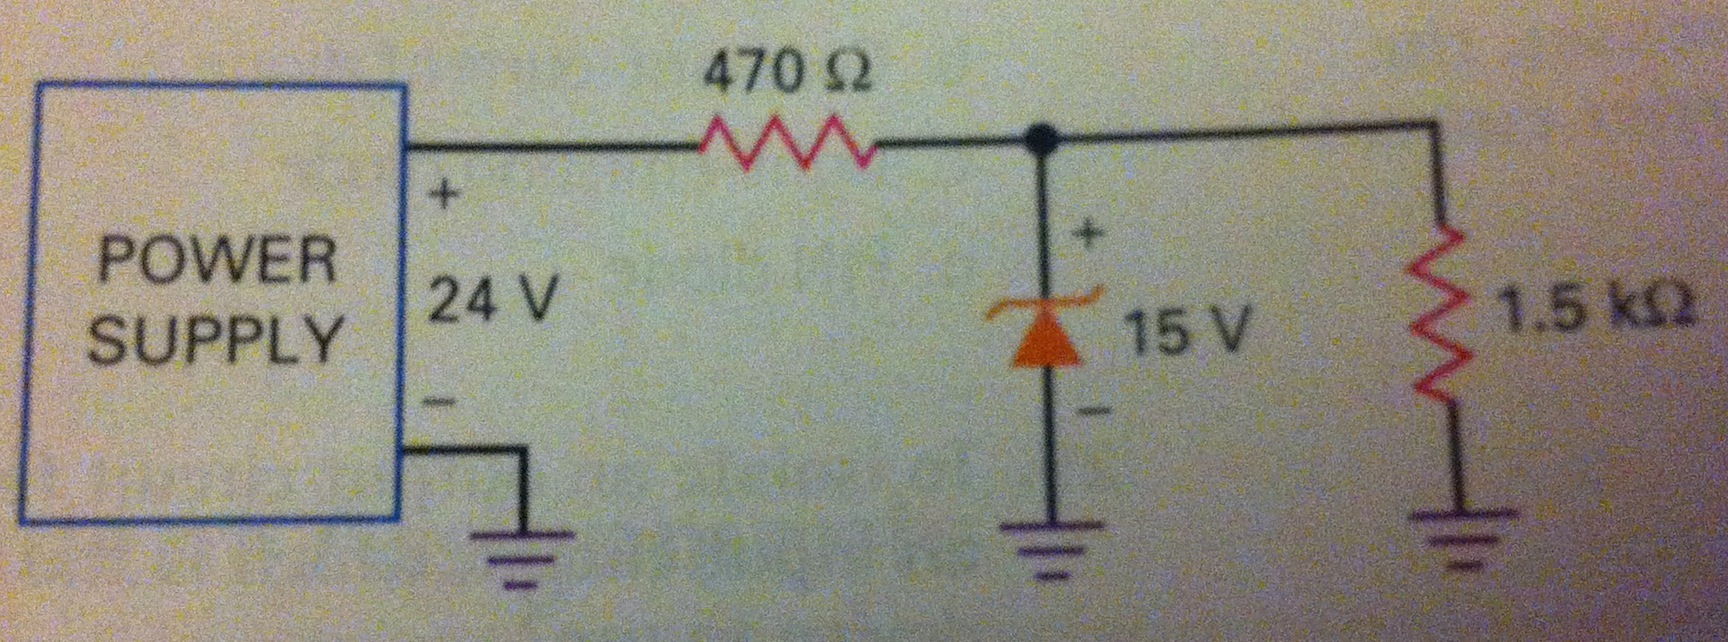 Assuming a tolerance of +or- 5% in both resistors